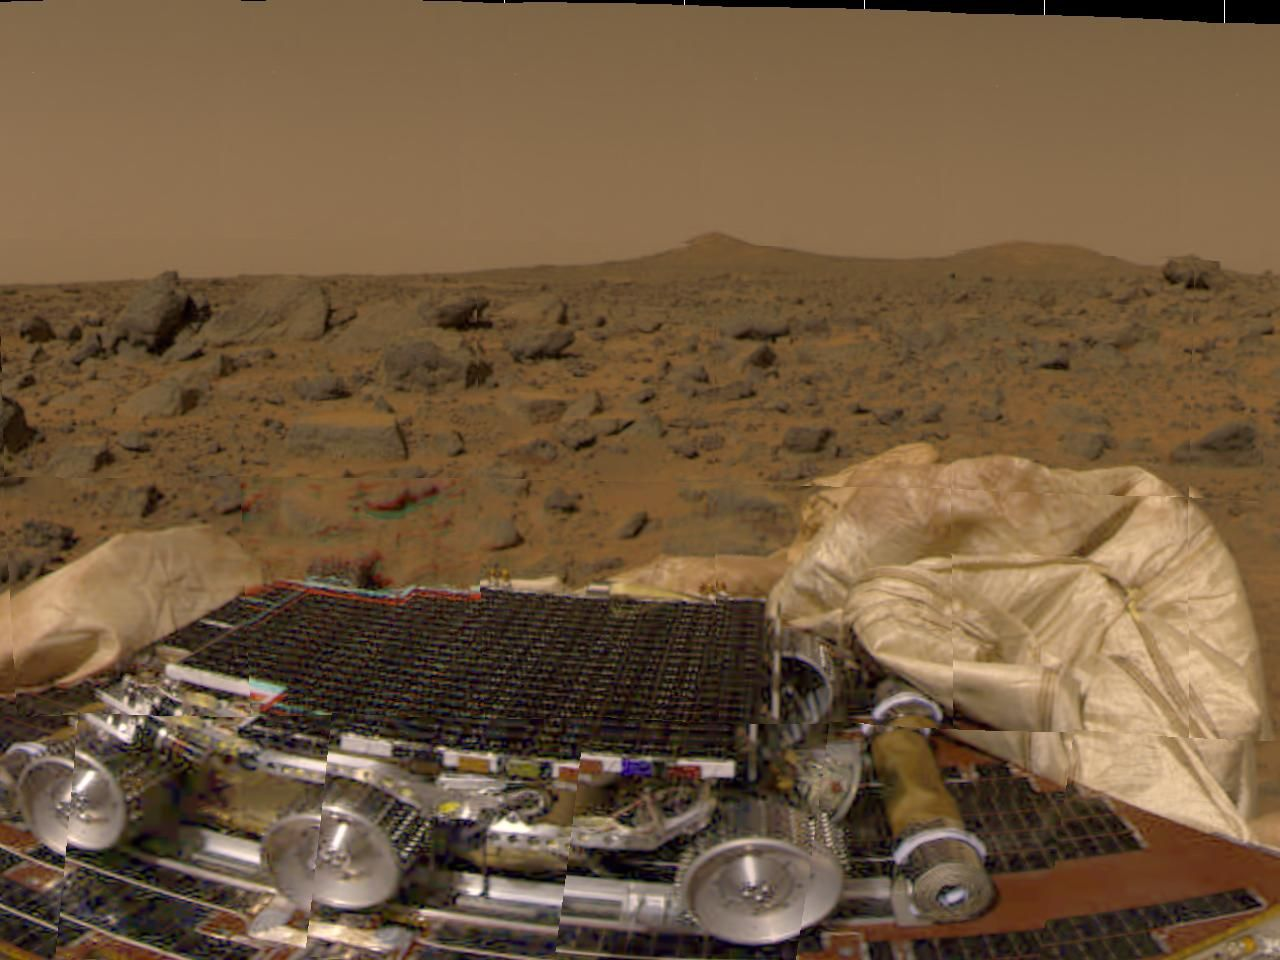 Guide To Astronomy: Mars Observer, Surveyor, and Pathfinder